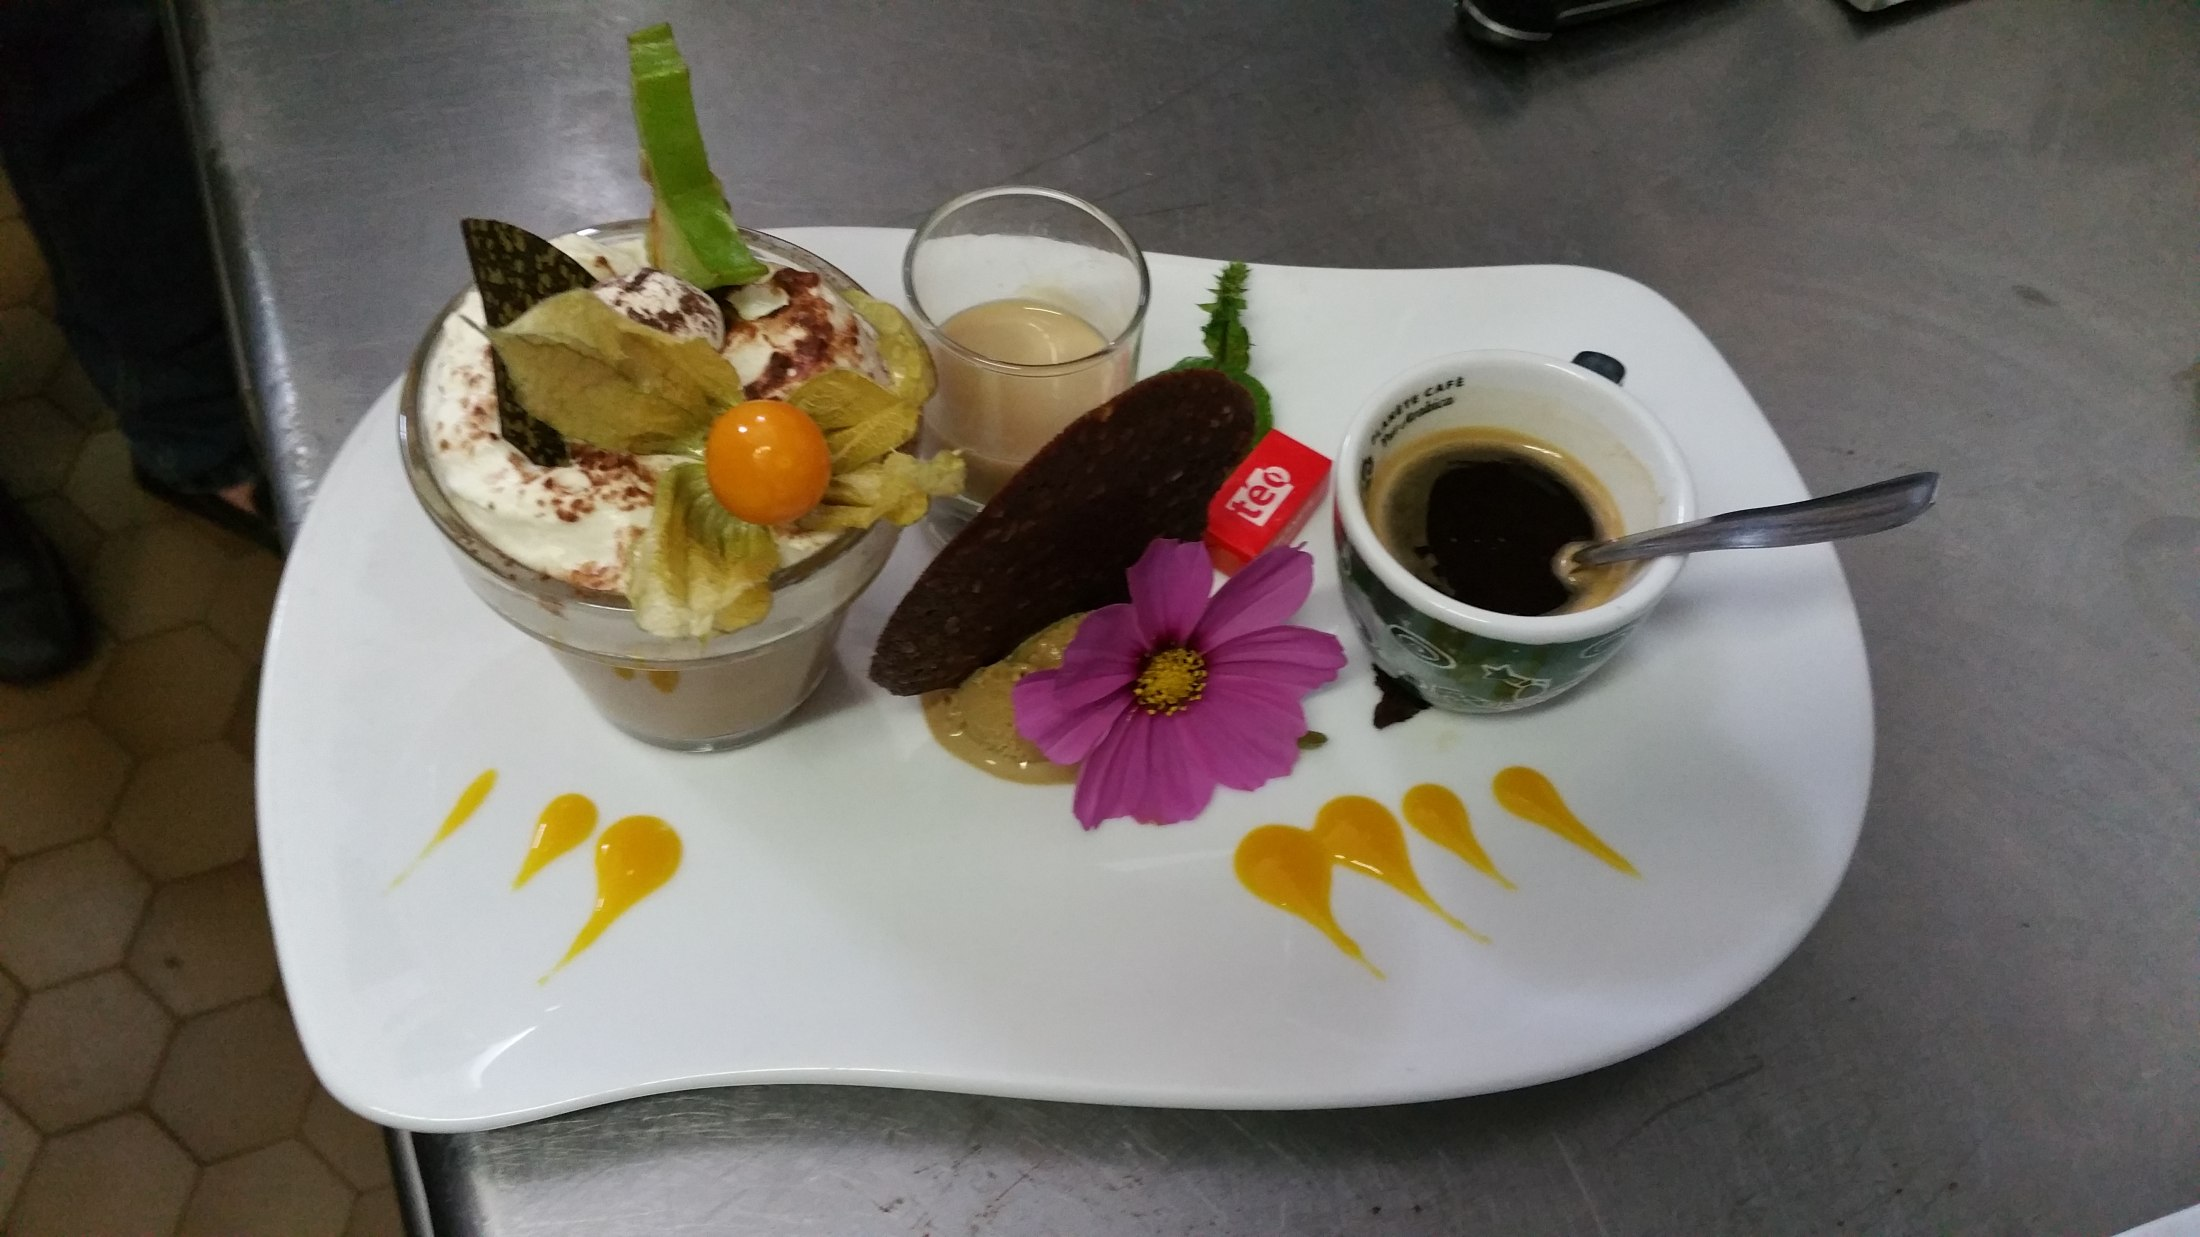 Irish café gourmand